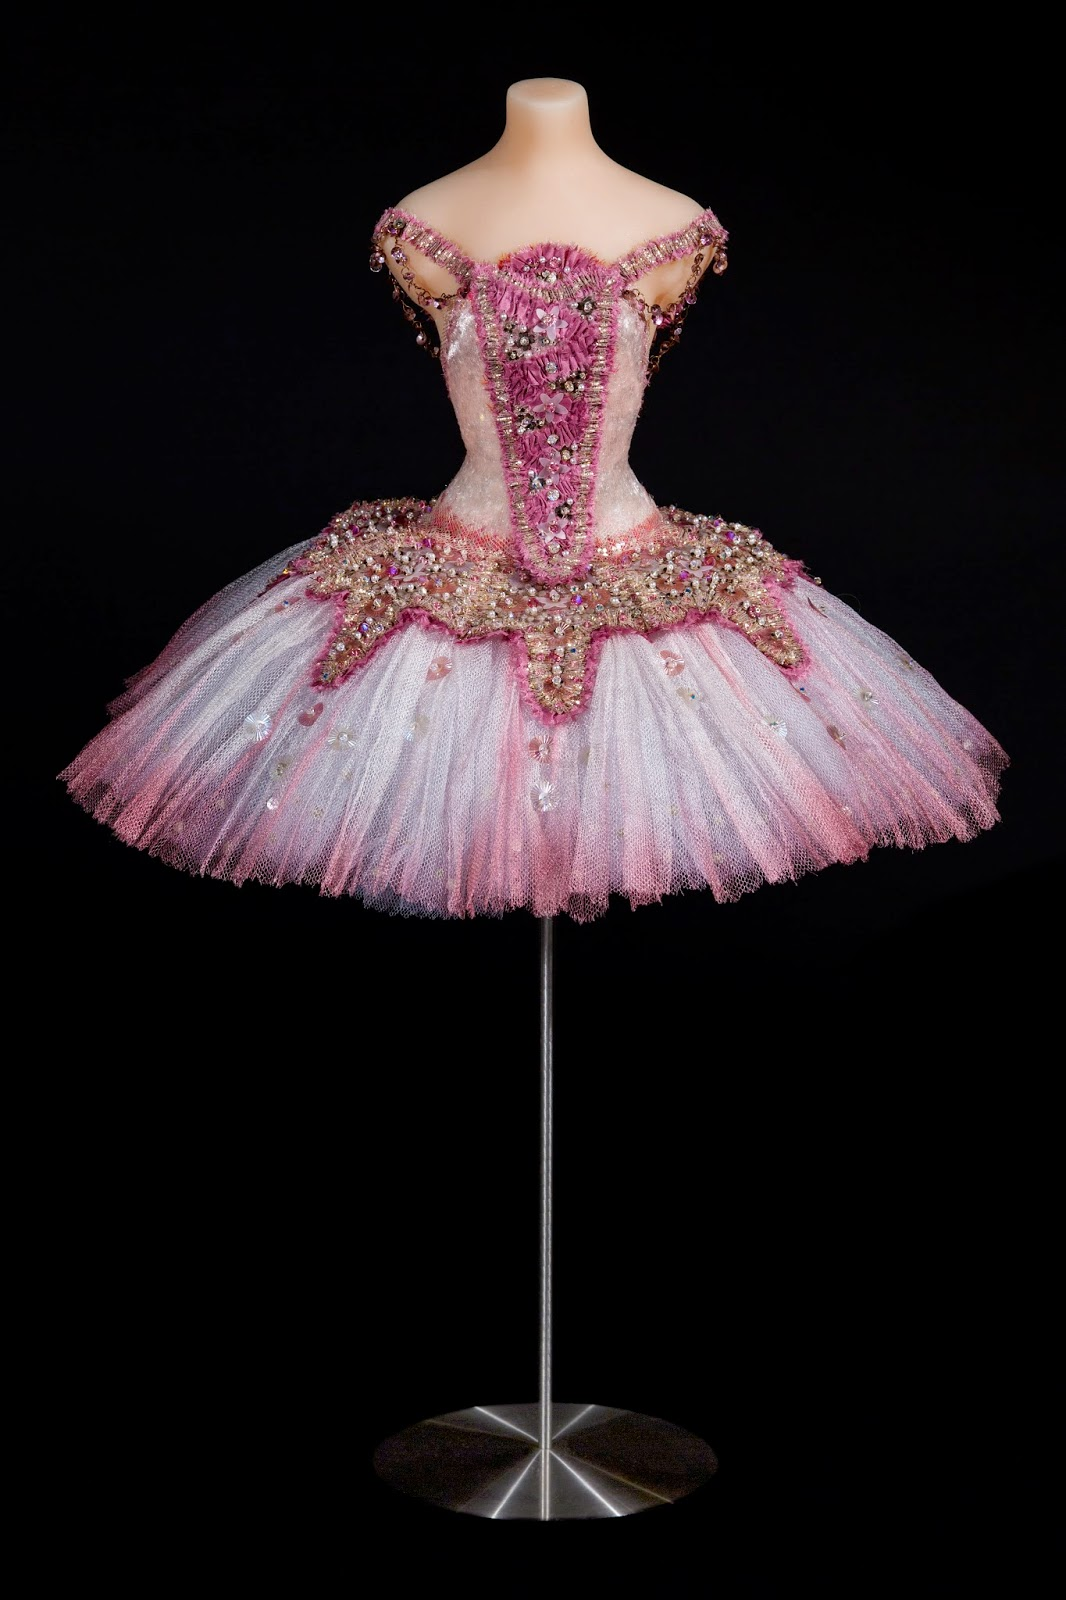 Our u0027Sugar Plum Fairyu0027 maquette from The Nutcracker ballet. Photograph by Richard Wilding. & The Little Costume Shop: Love Is in the Air!